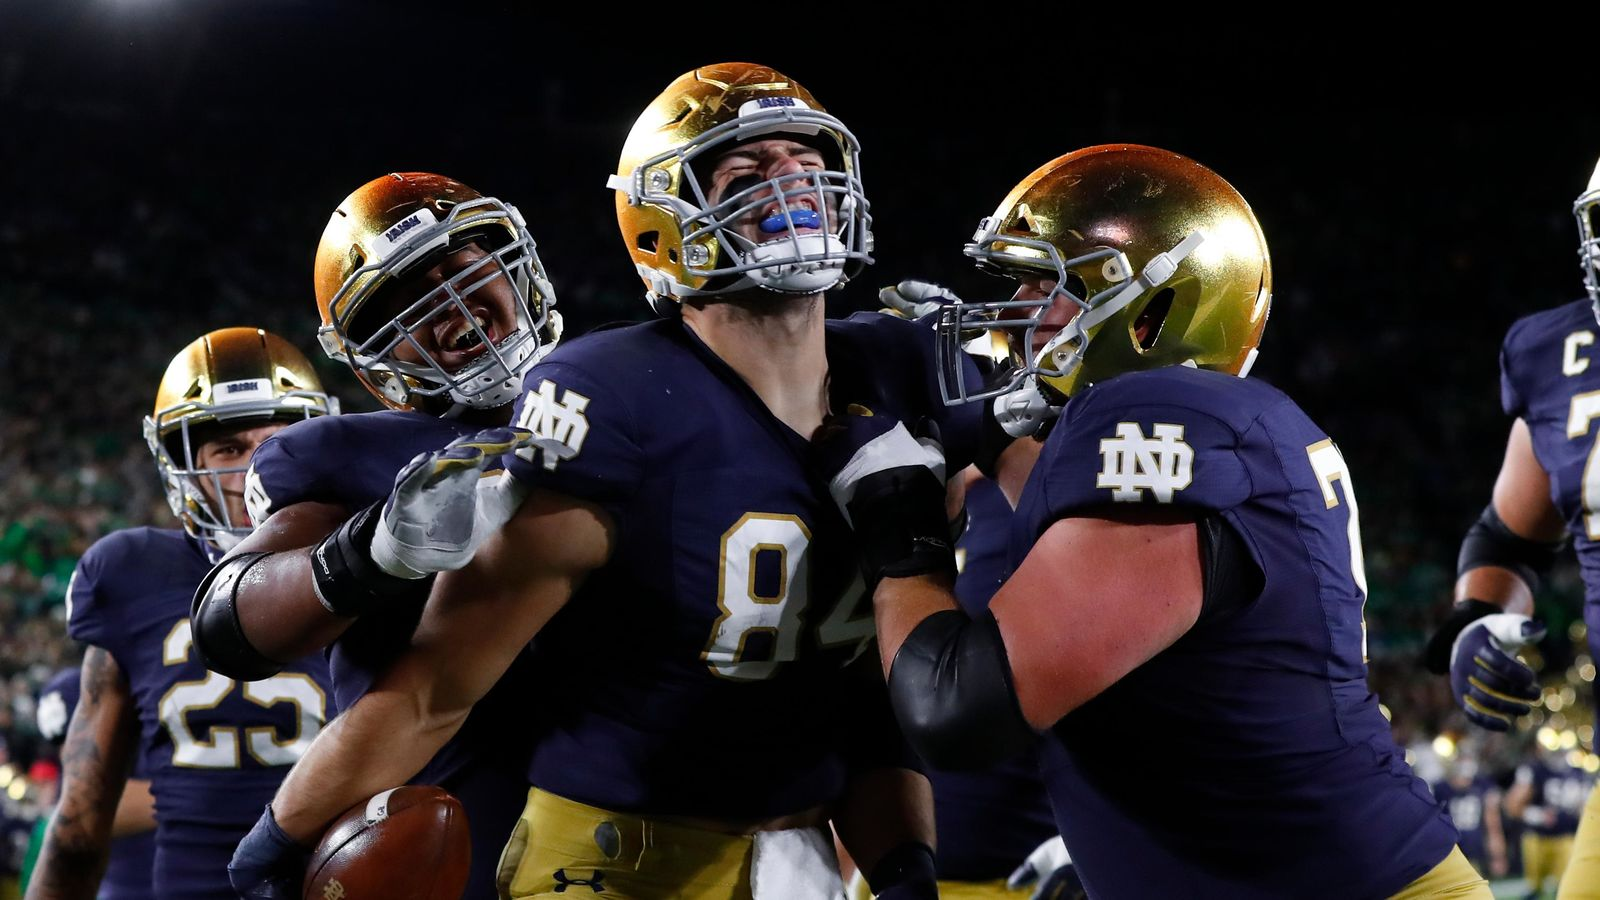 Notre Dame tight end Cole Kmet (84) celebrates his 10-yard touchdown catch against Southern California in the first half of an NCAA college football game in South Bend, Ind., Saturday, Oct. 12, 2019. (AP Photo/Paul Sancya)